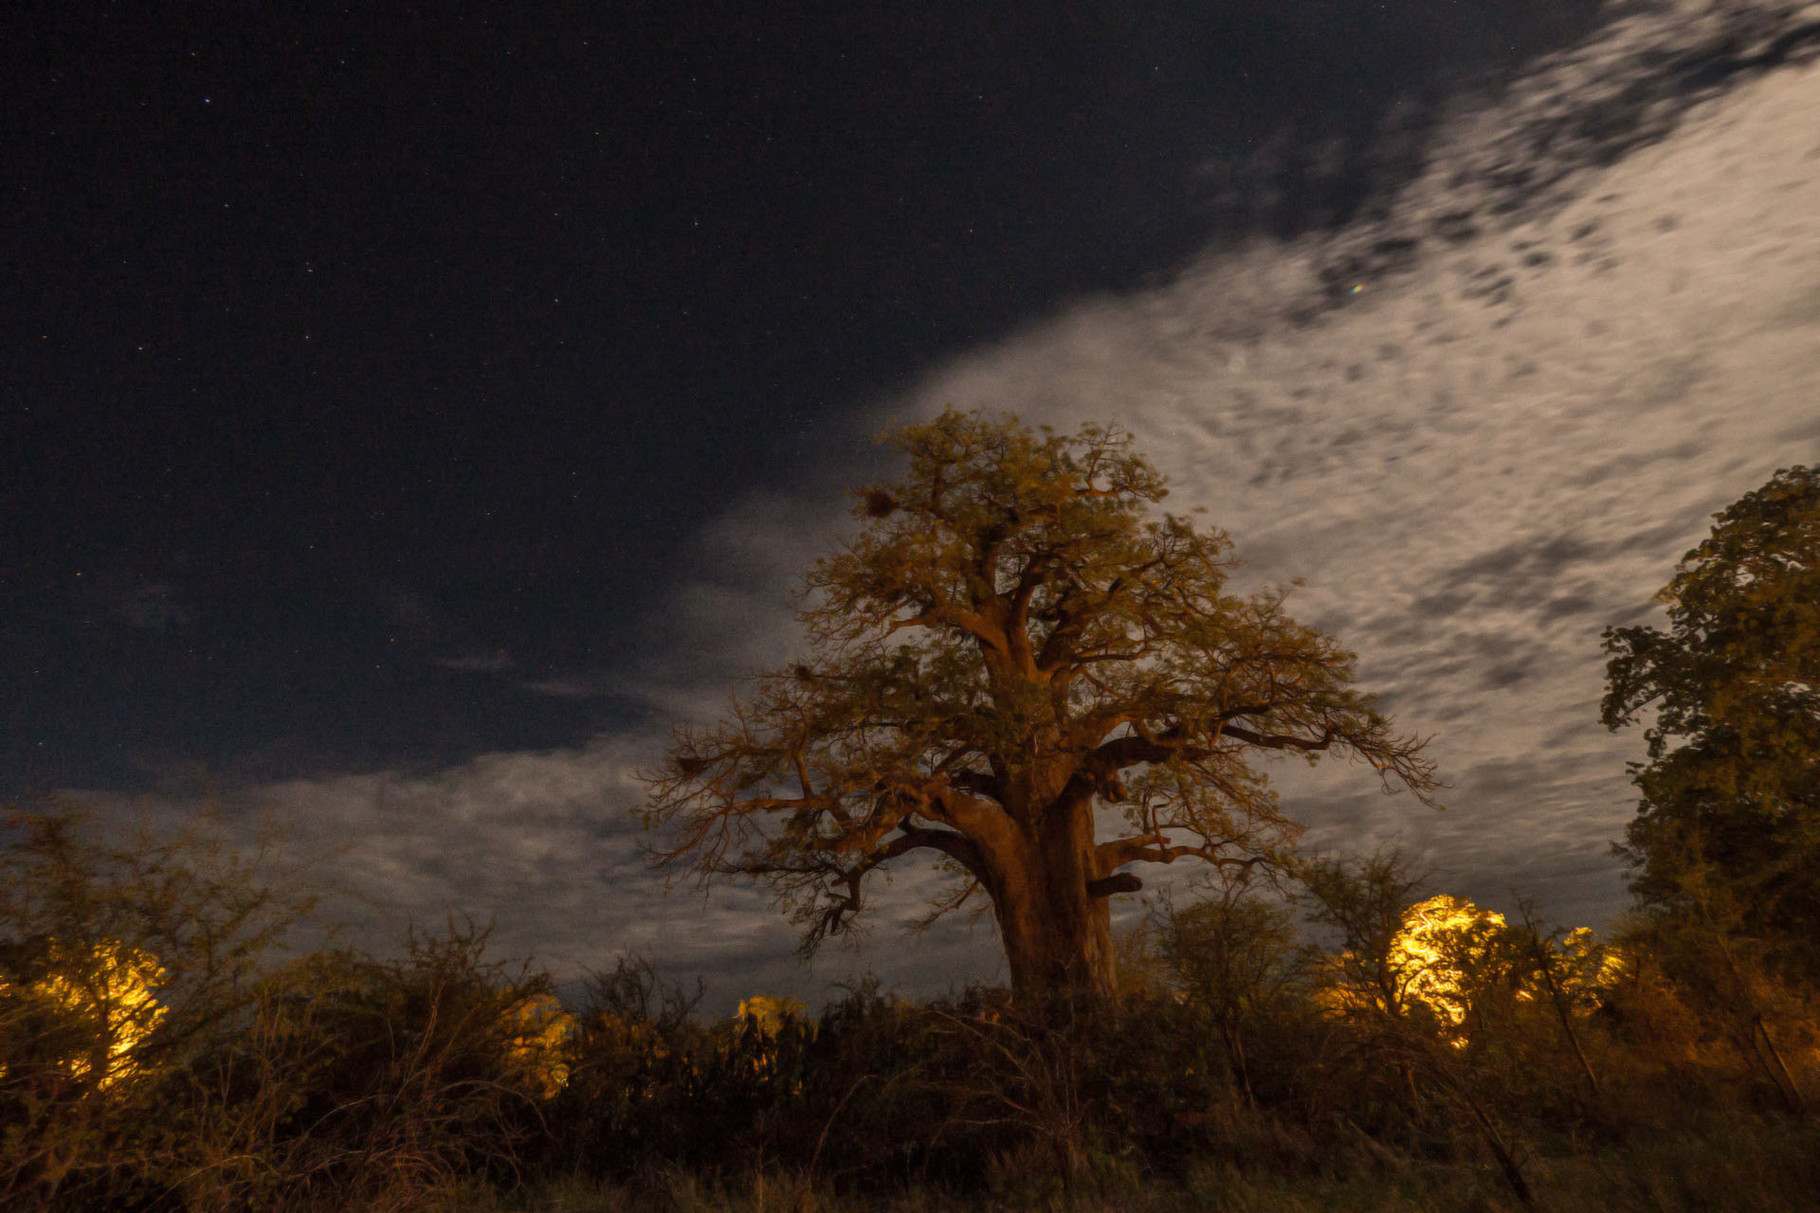 Giant baobab tree during full moon night